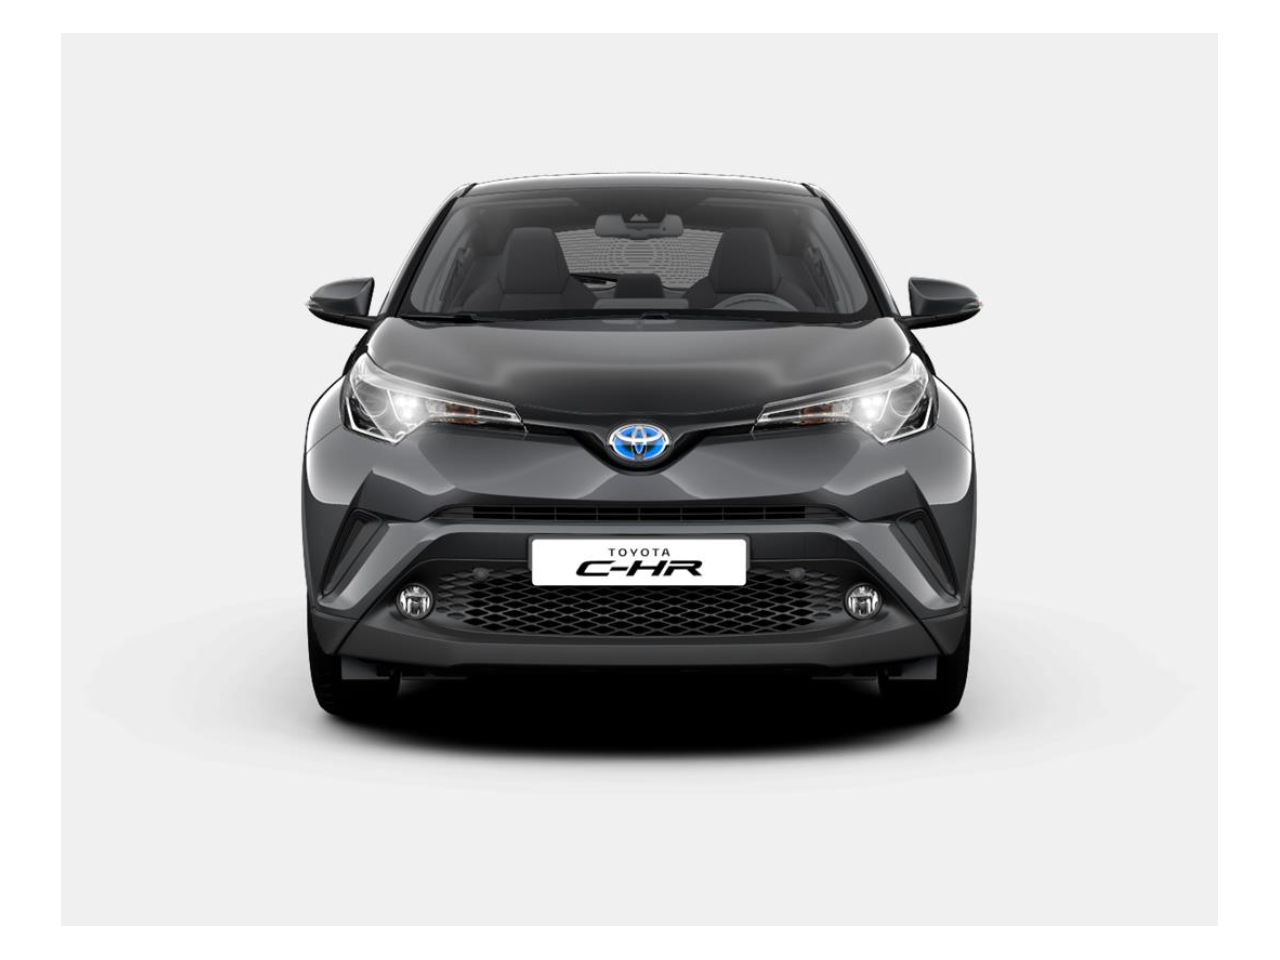 Toyota C-HR private lease C-HR 1.2 Turbo Active